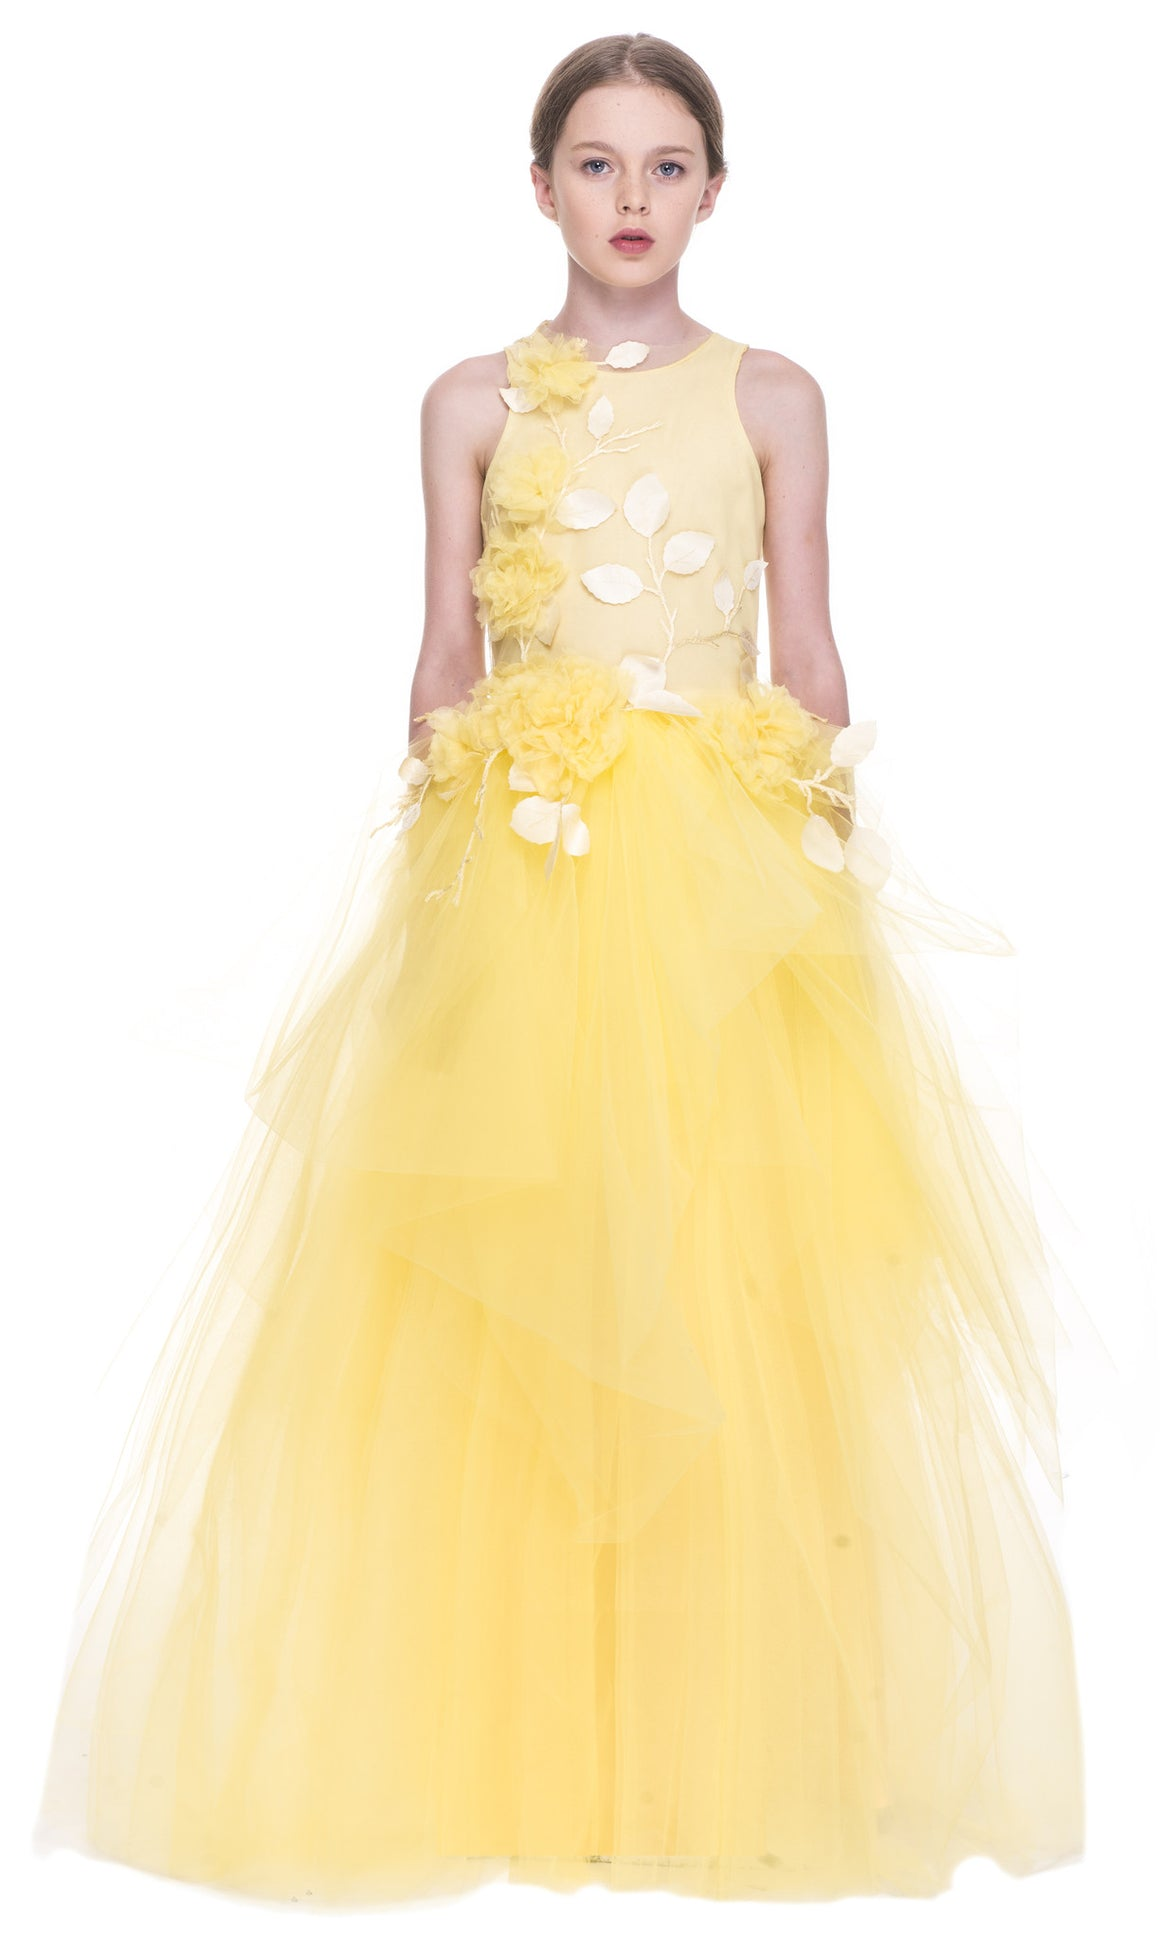 Mischka Aoki - The Princess and The Glass Slipper | Party Dresses | Bon Bon Tresor